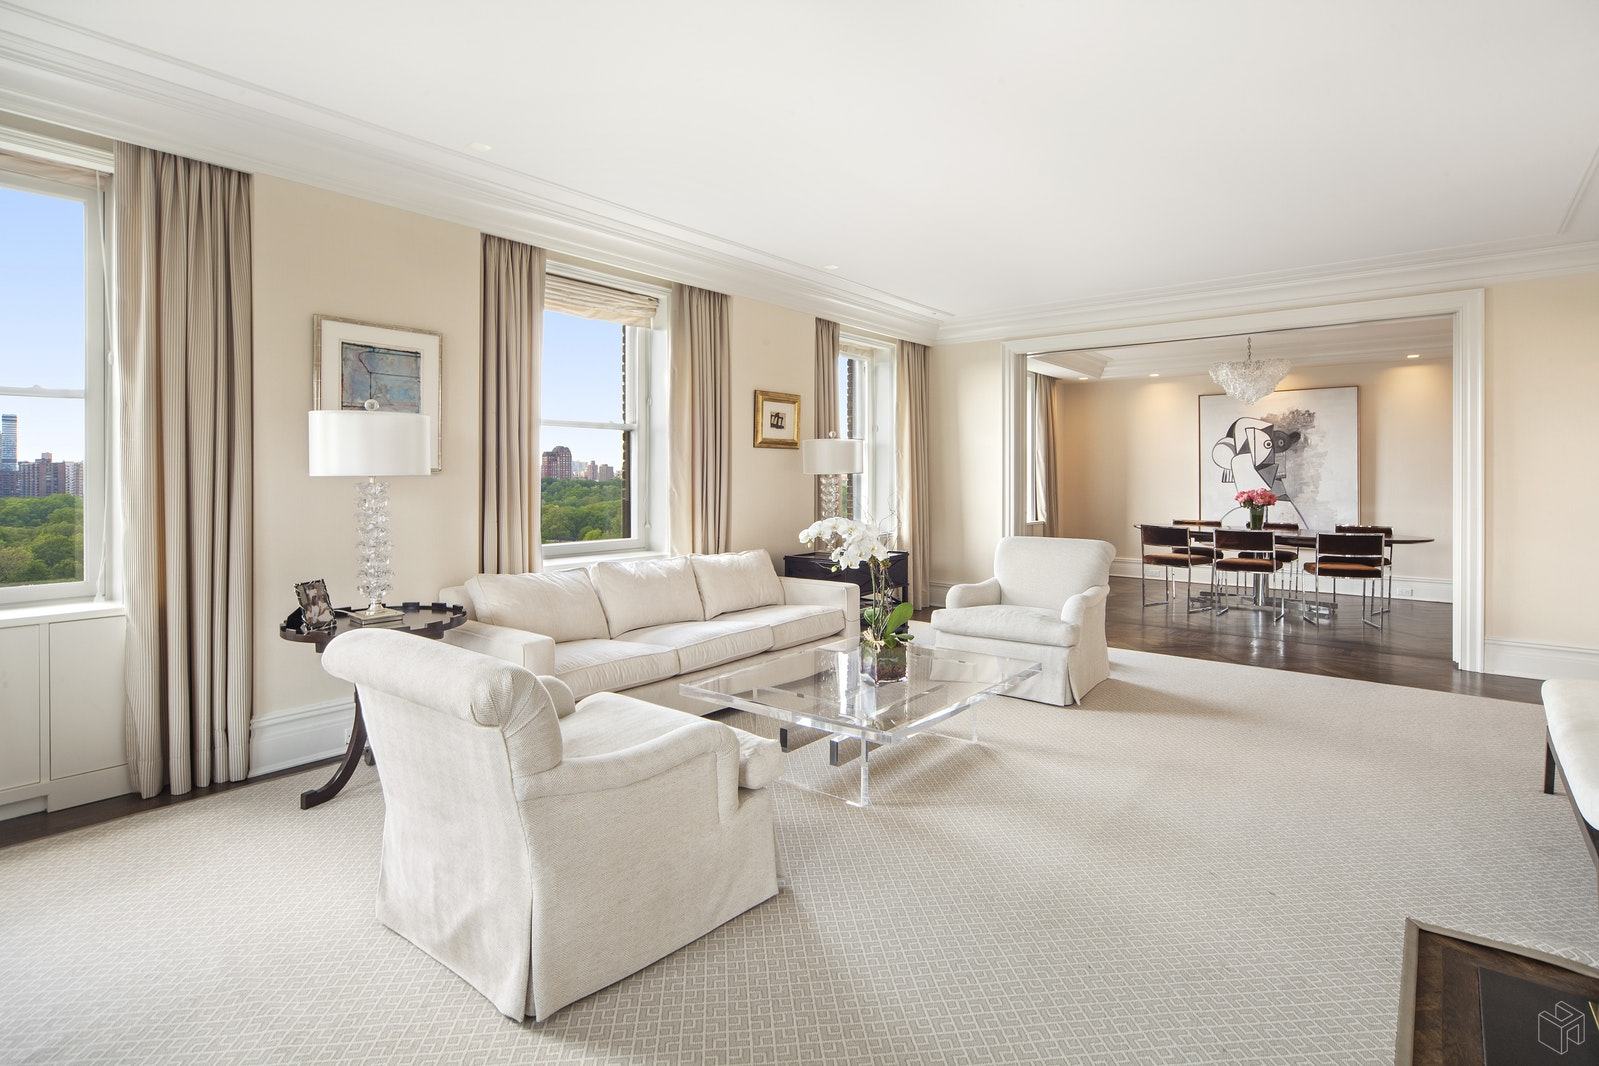 1165 Fifth Avenue 15pha, Upper East Side, NYC, 10029, $12,250,000, Property For Sale, Halstead Real Estate, Photo 5